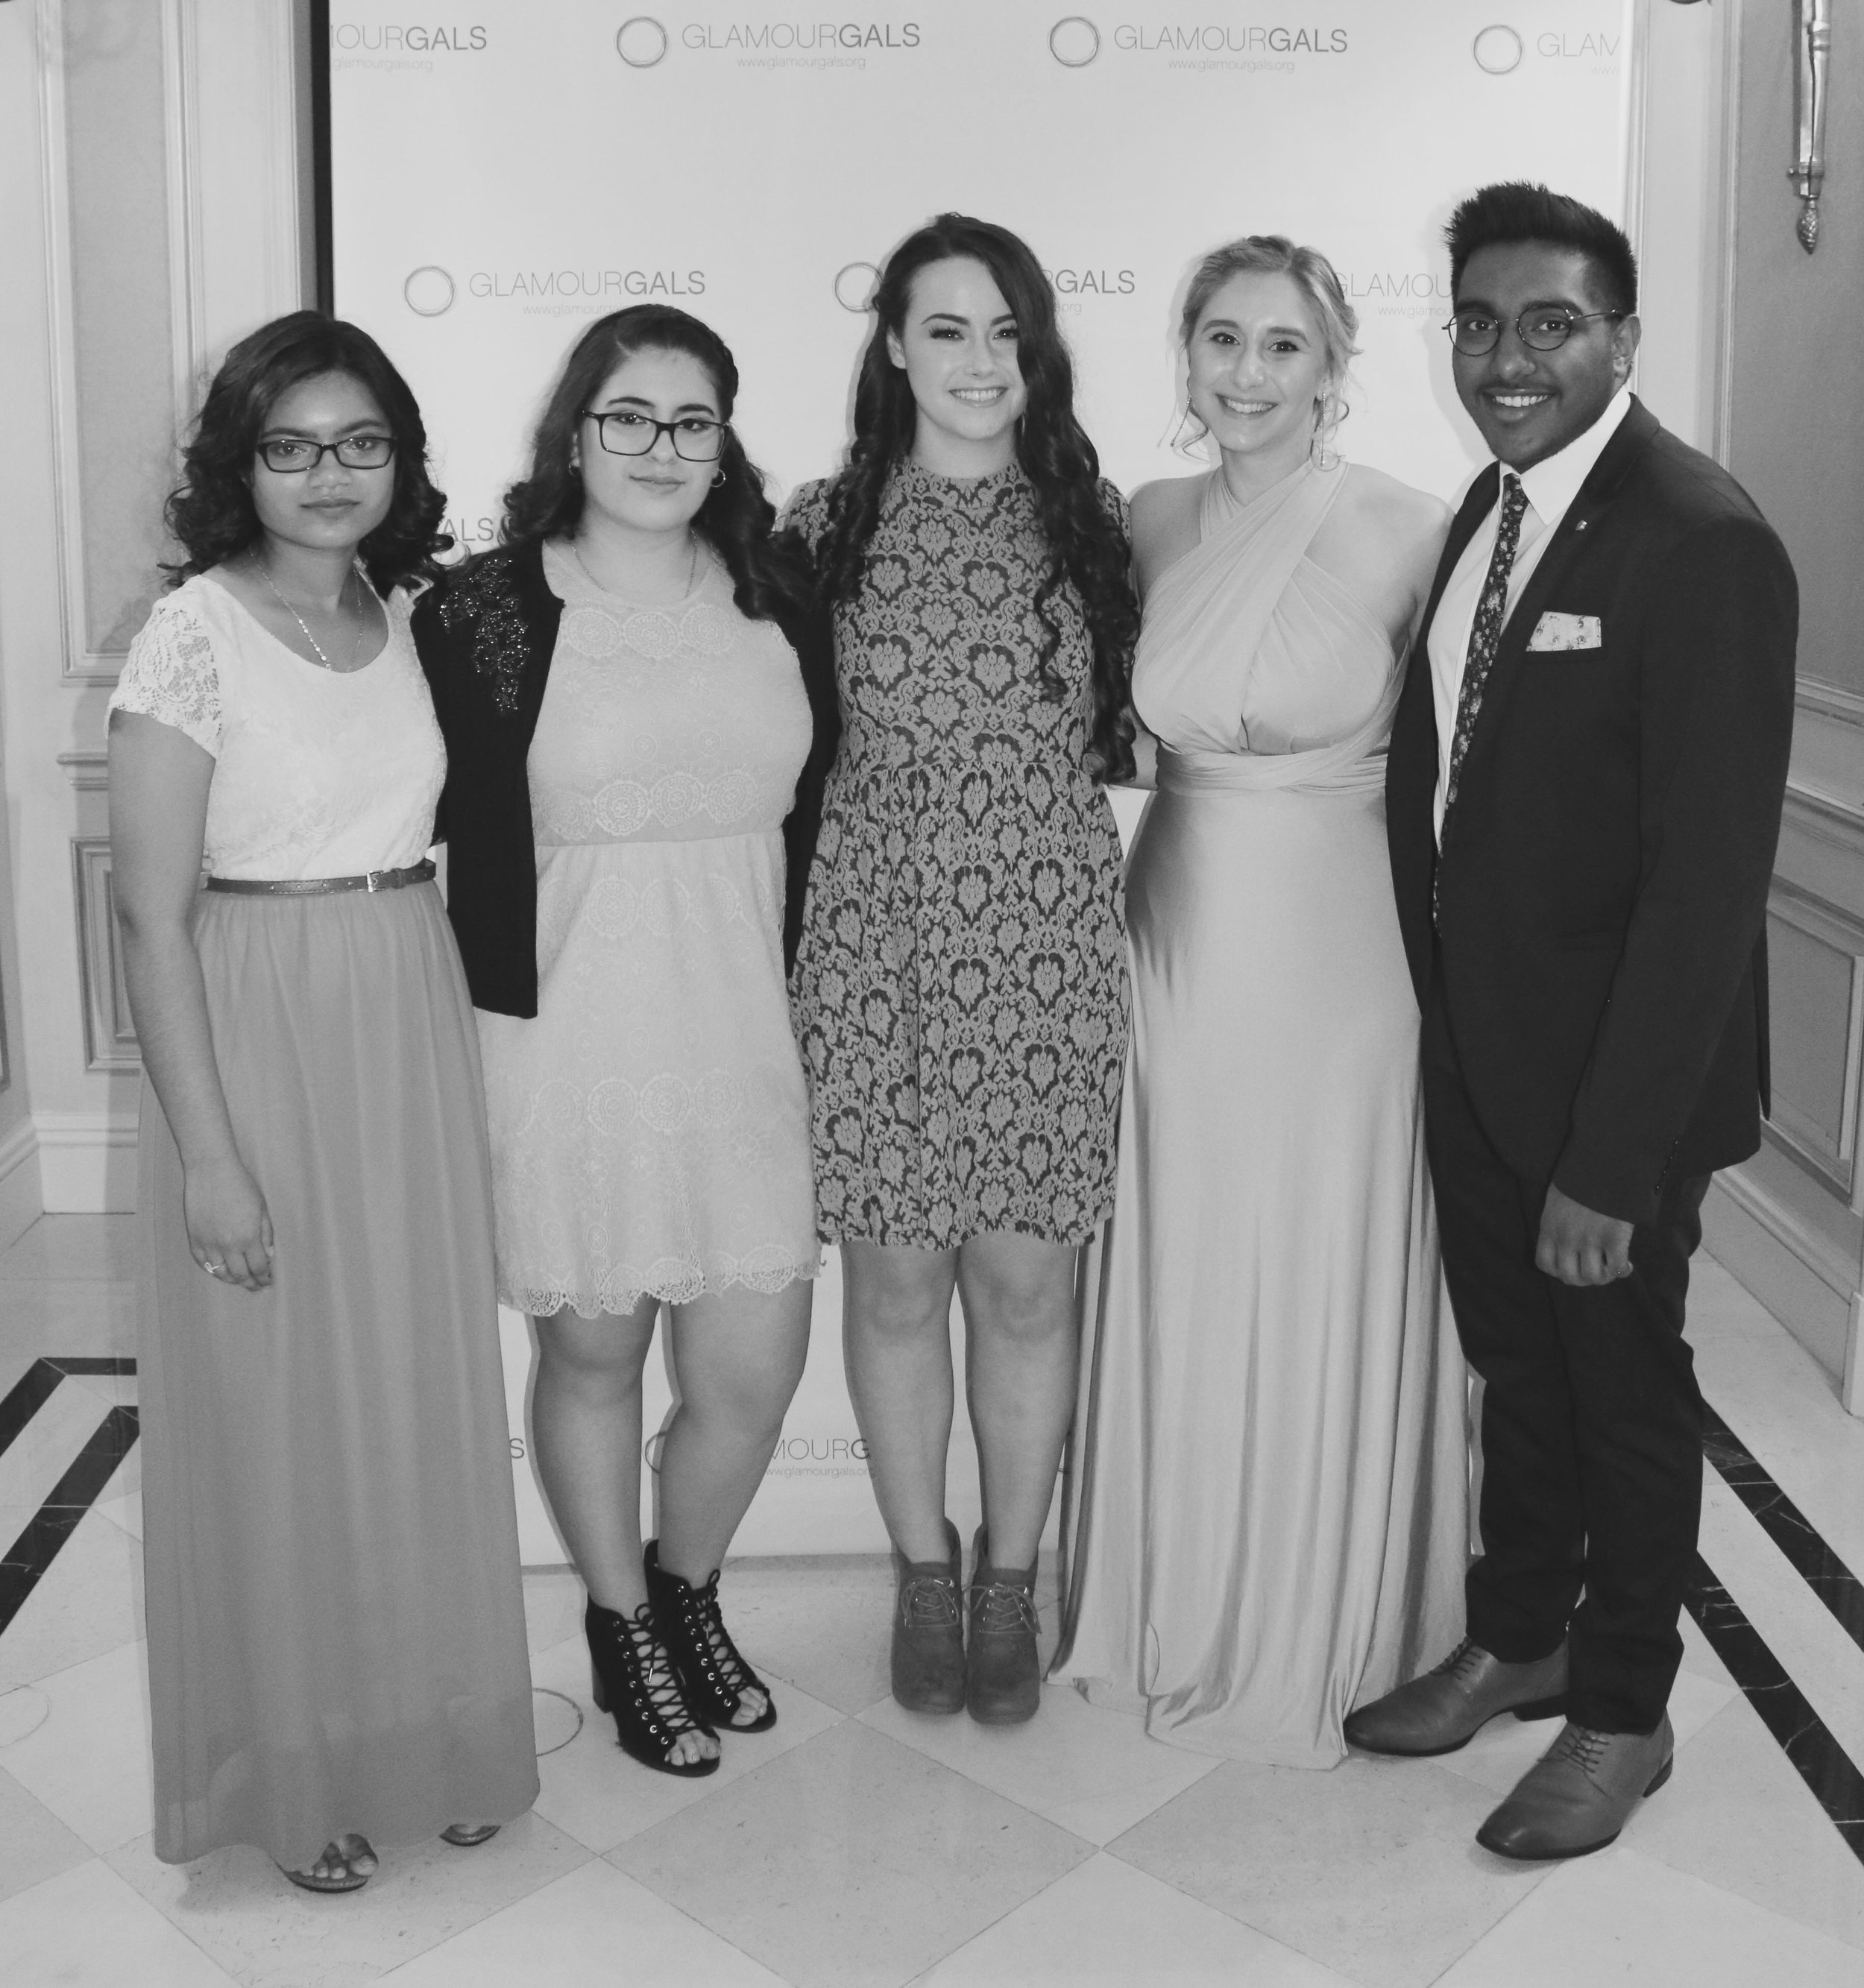 This year's Glammy Award Winners, from left: Sara Ullah, Elizabeth Quinto, Jacqueline Kerlin, Leyla Mulavdic and Nicholas Sookhoo. (Not pictured: Bailey Watkins)